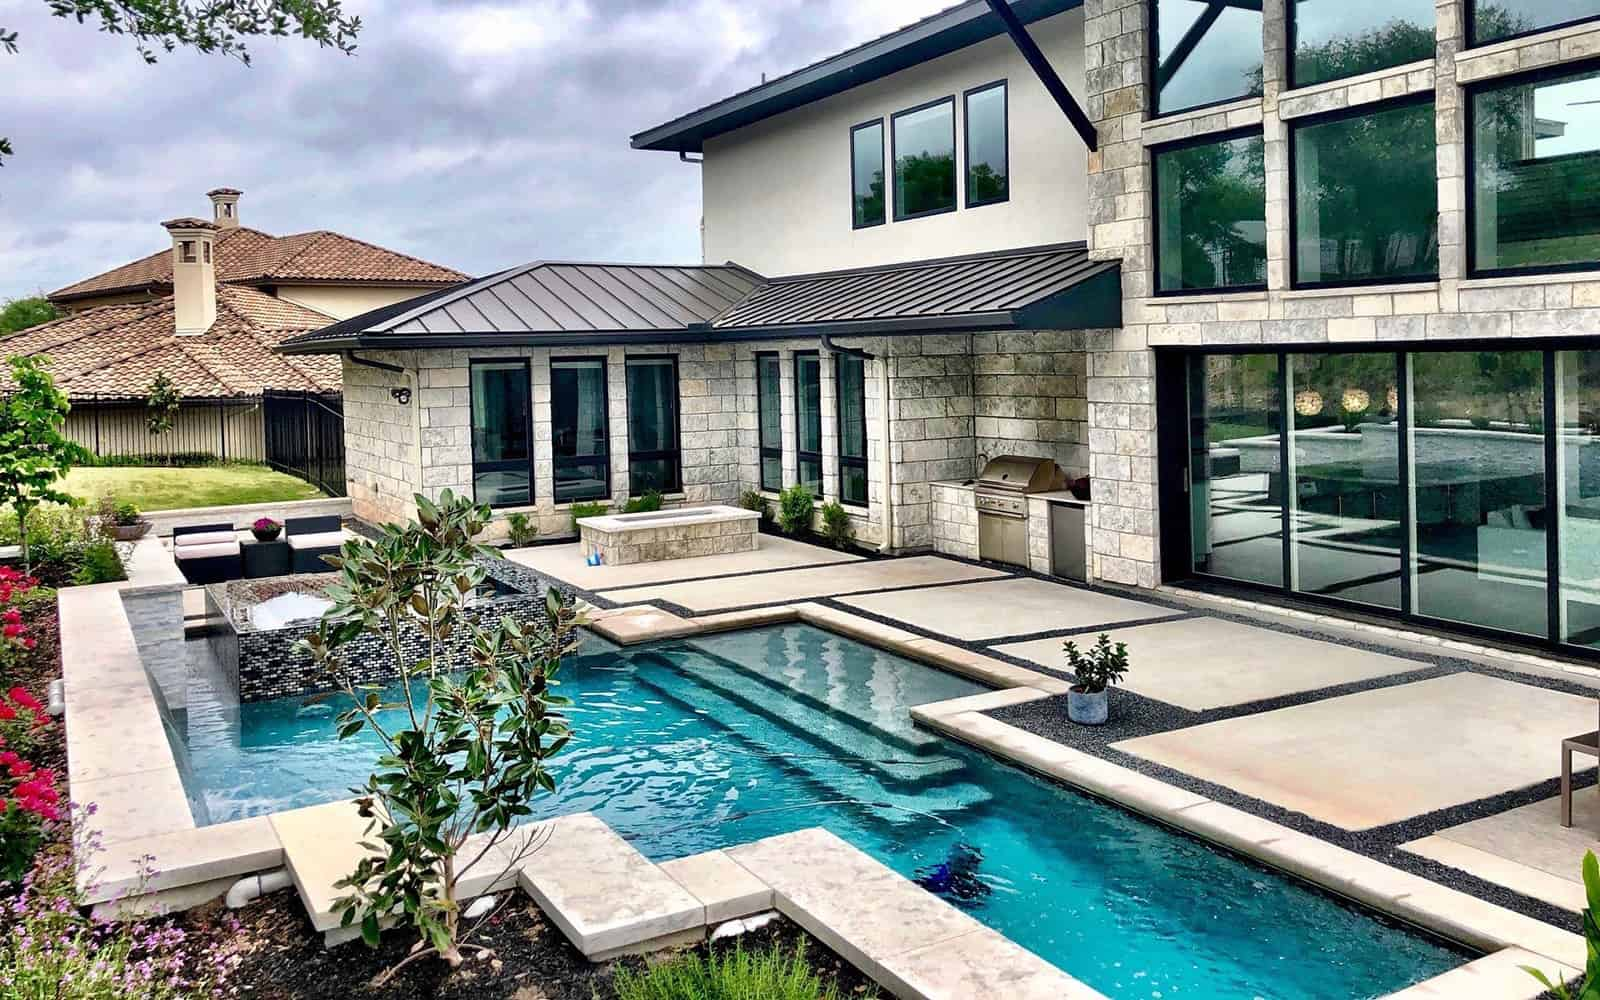 Pool, patio, and outdoor kitchen built by Crescent Homes Maui